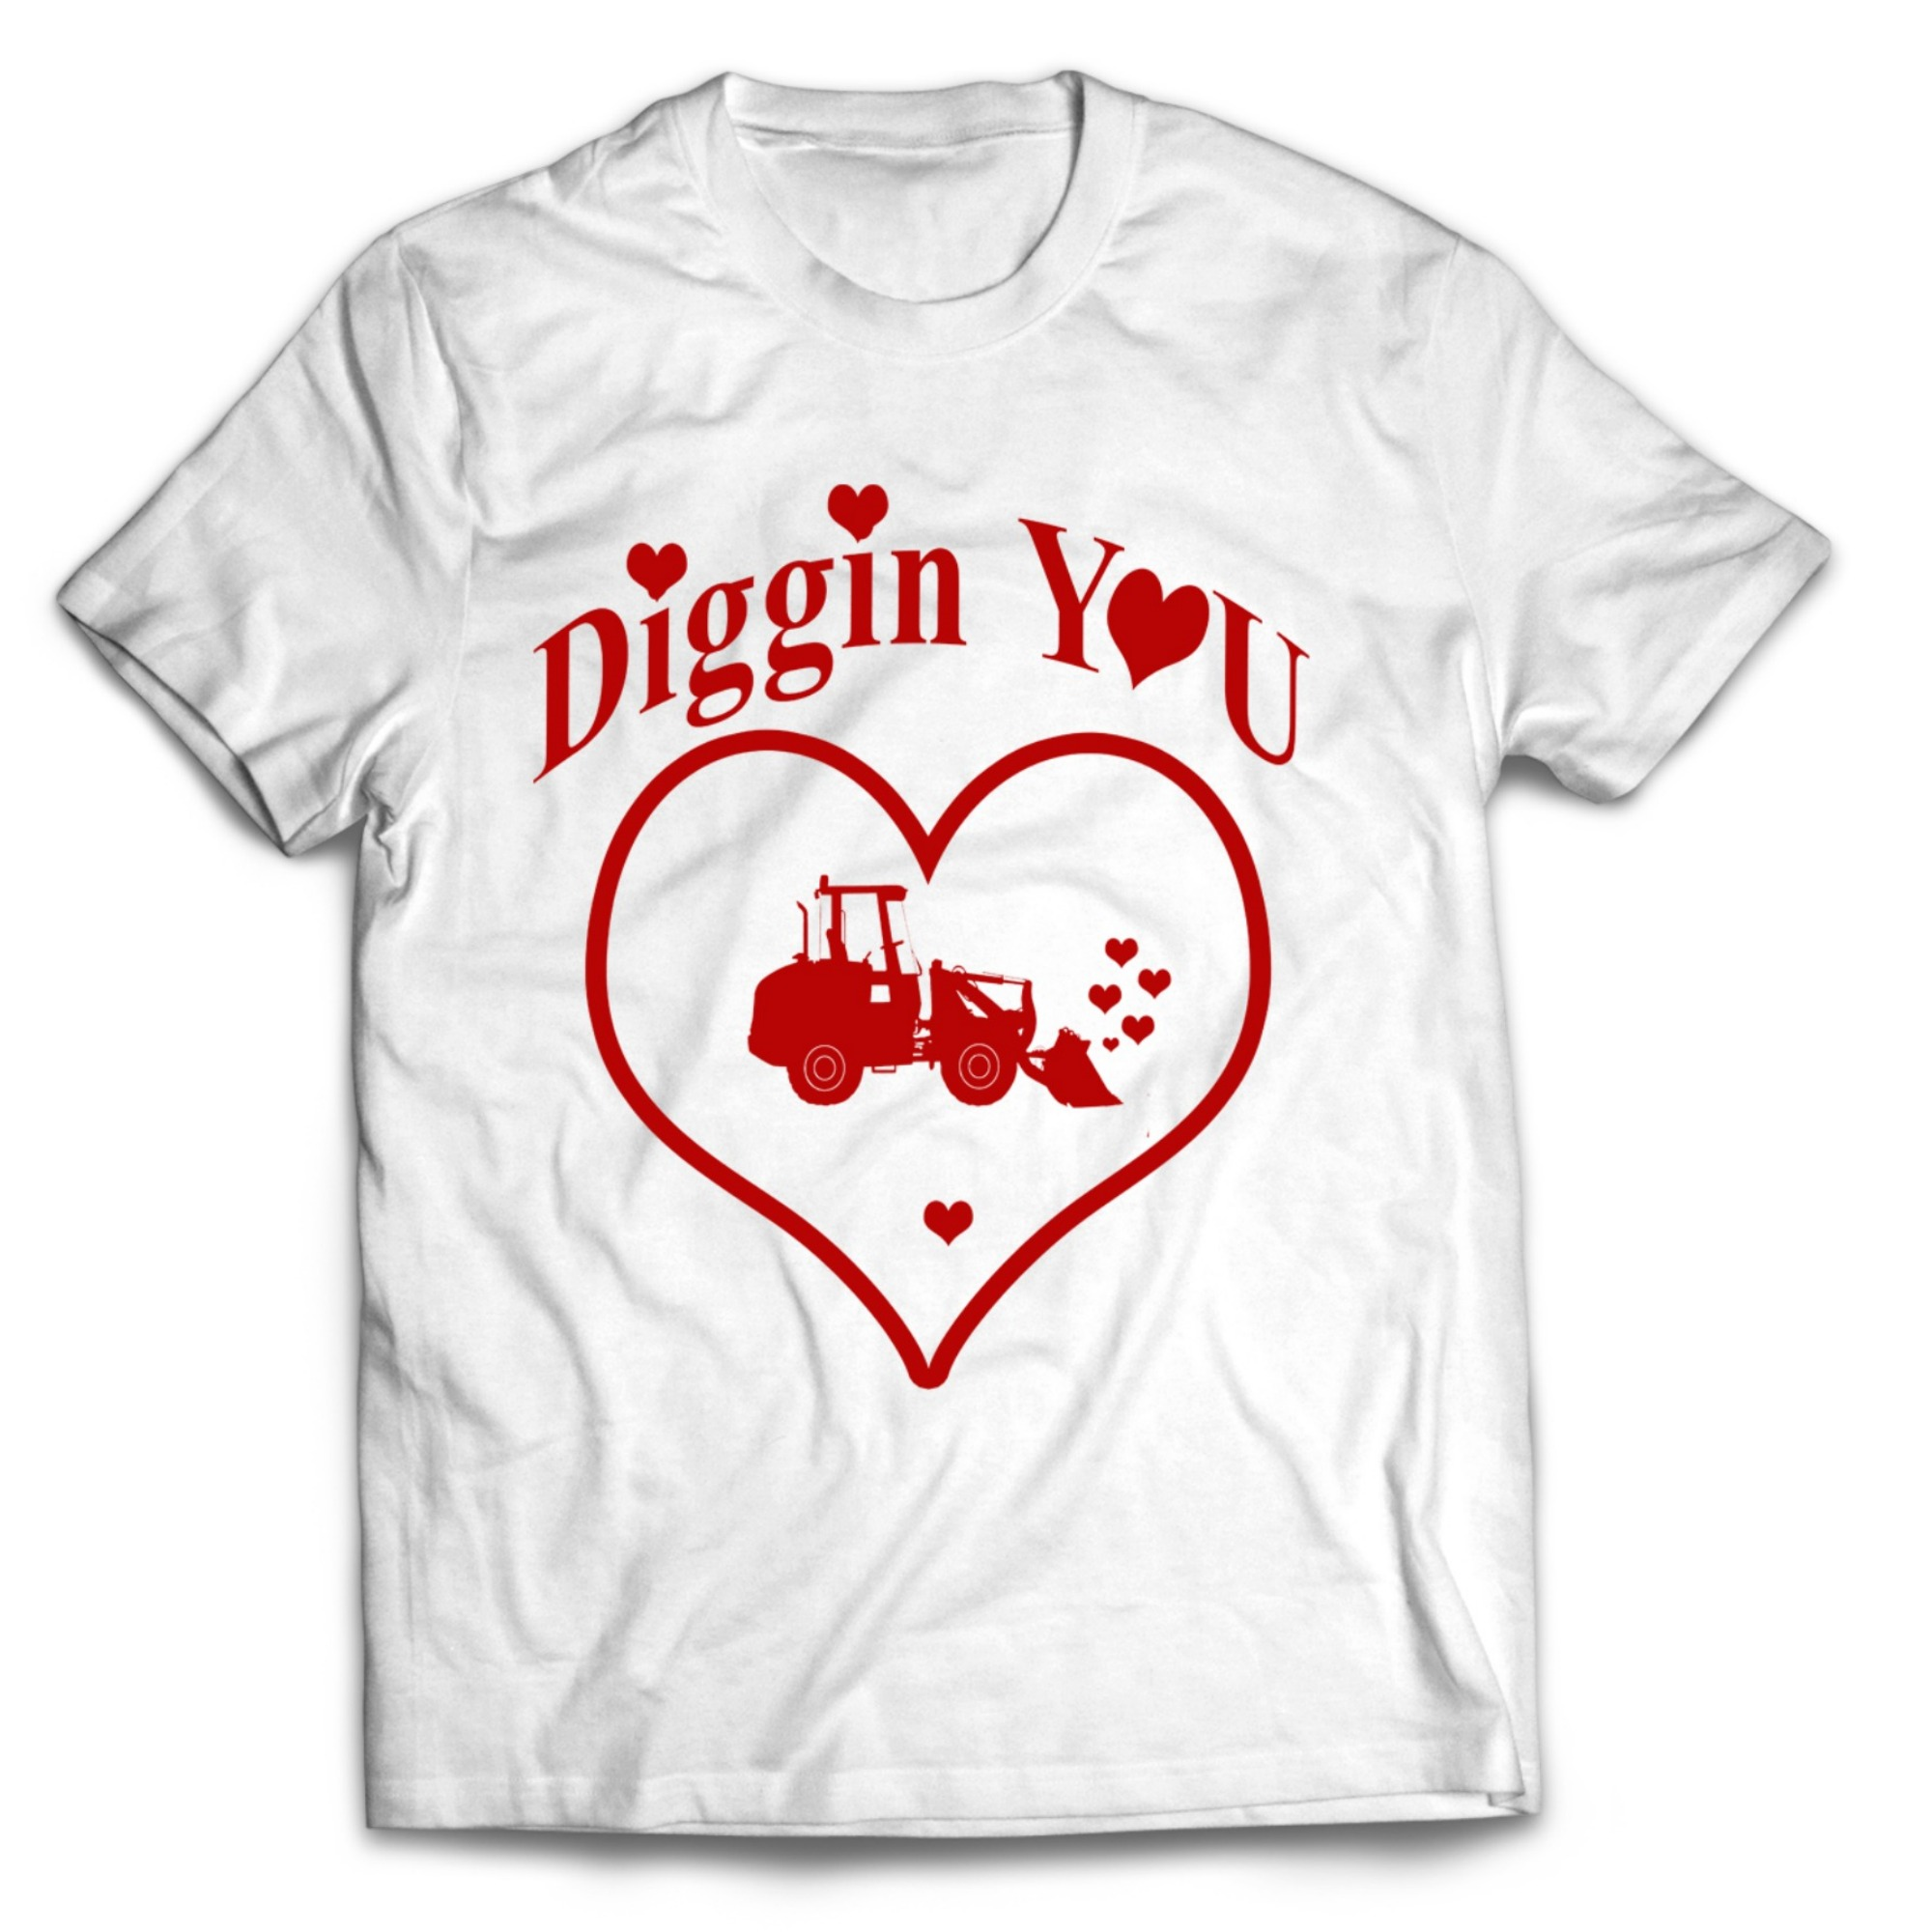 6def1ccbb Valentine Shirts For Boys